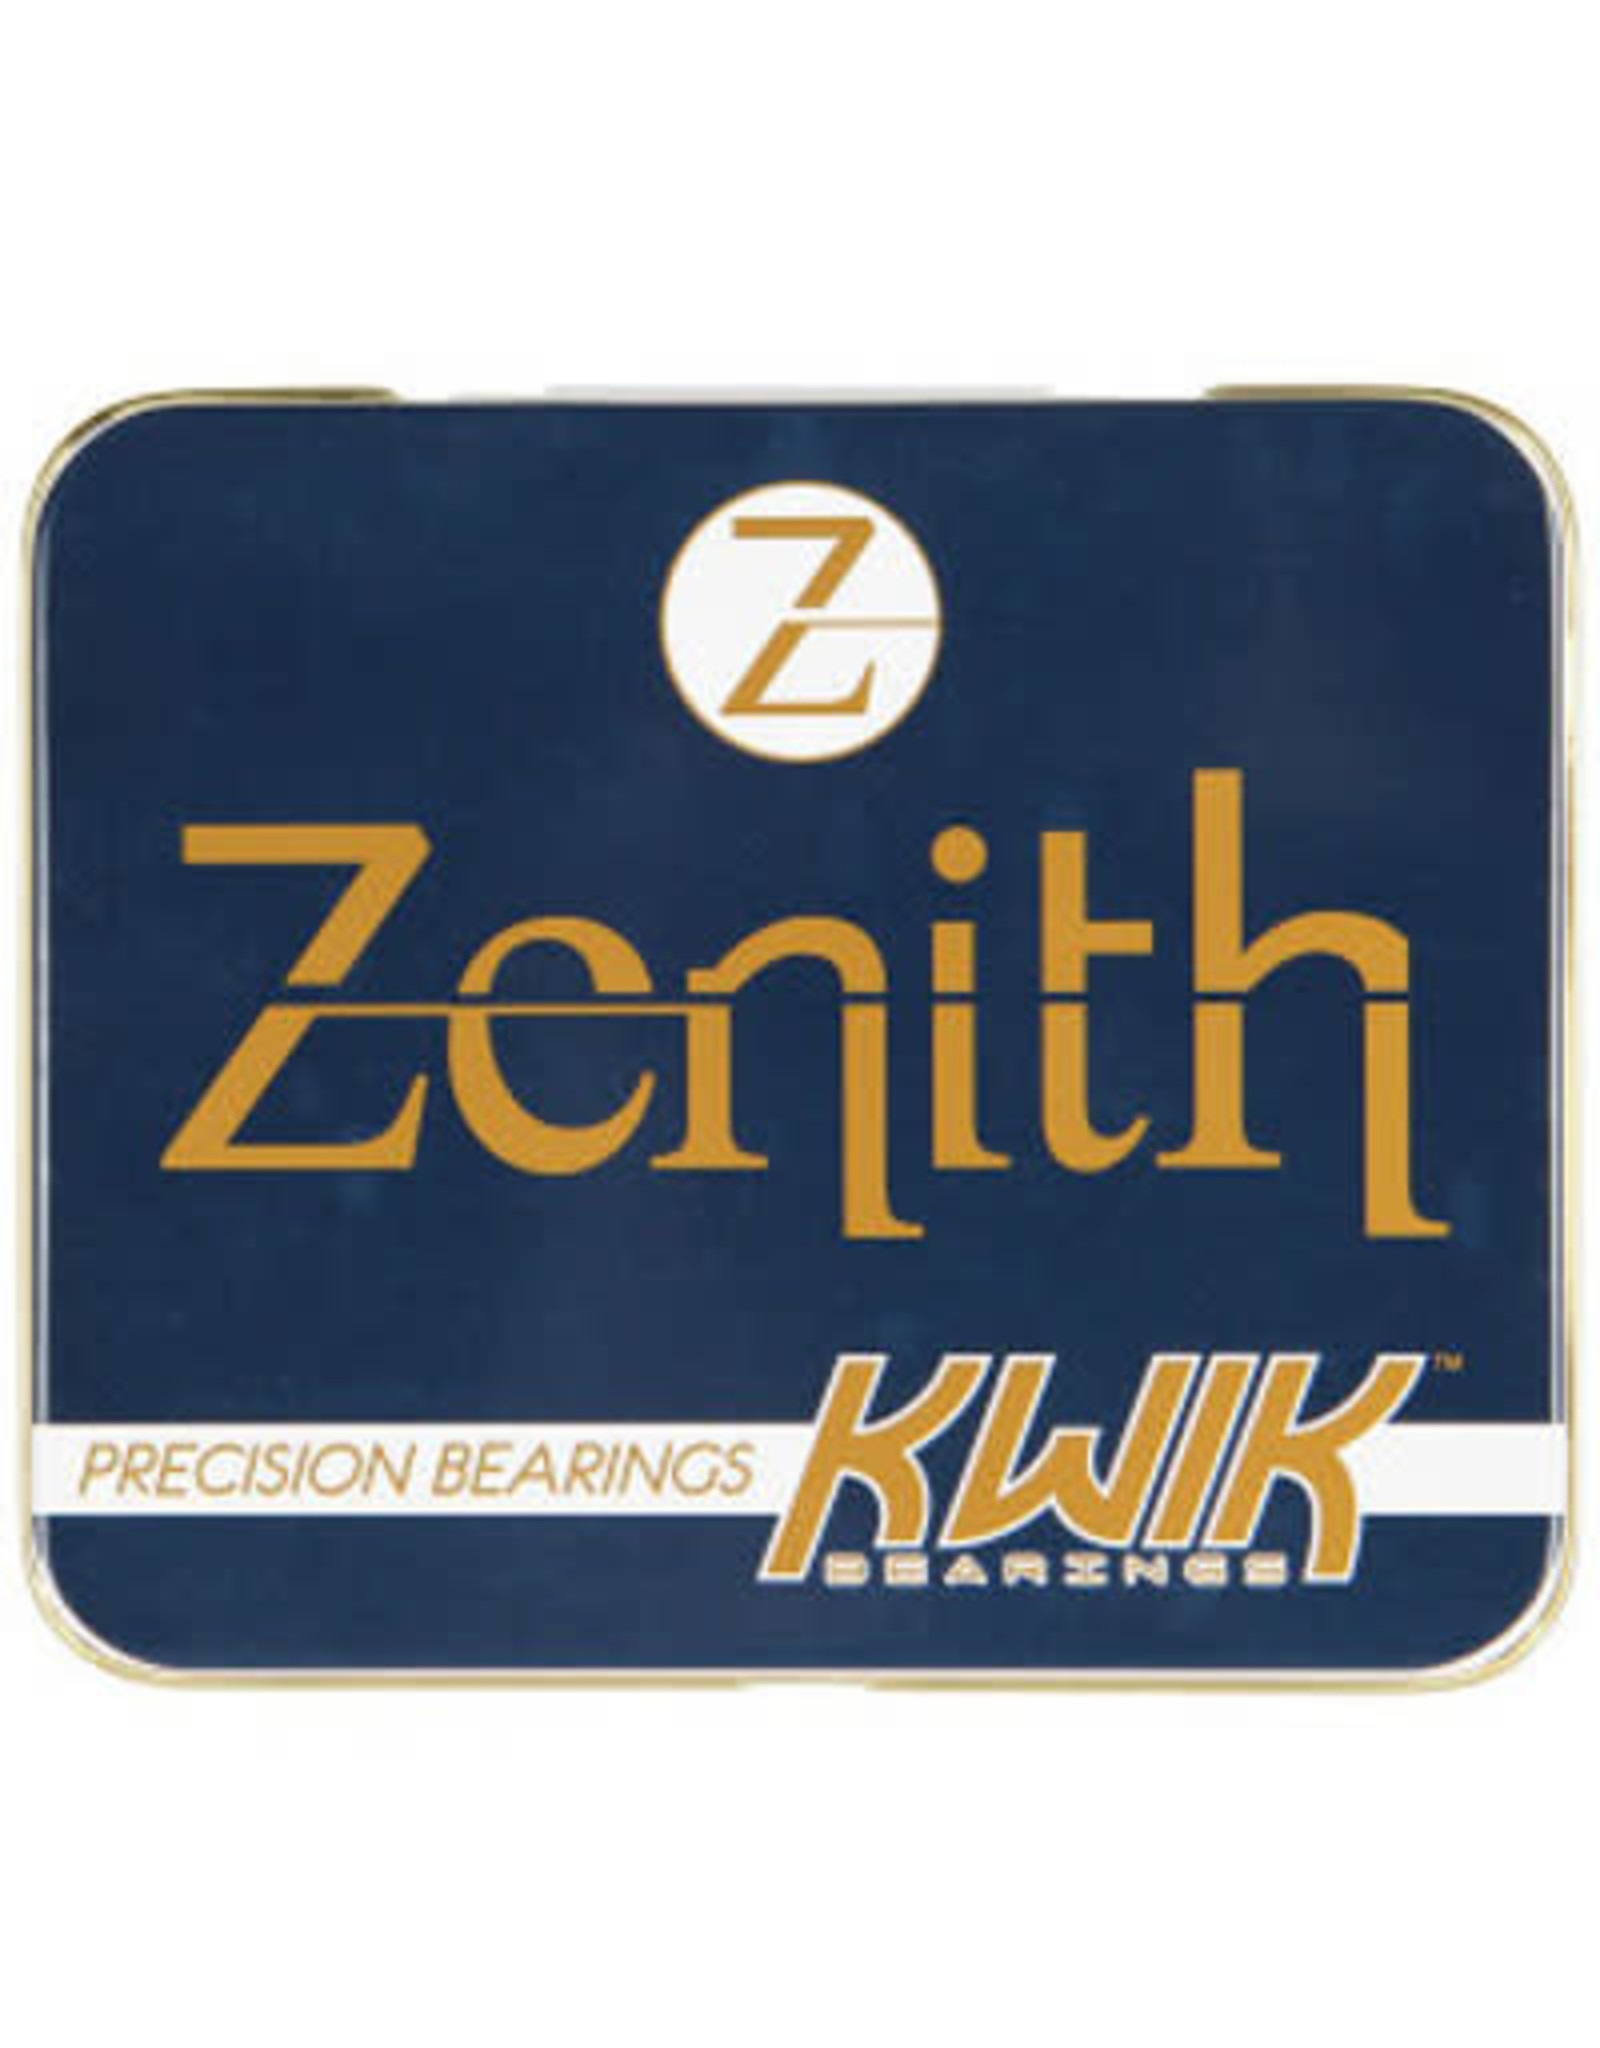 Riedell Kwik Zenith bearings 8mm